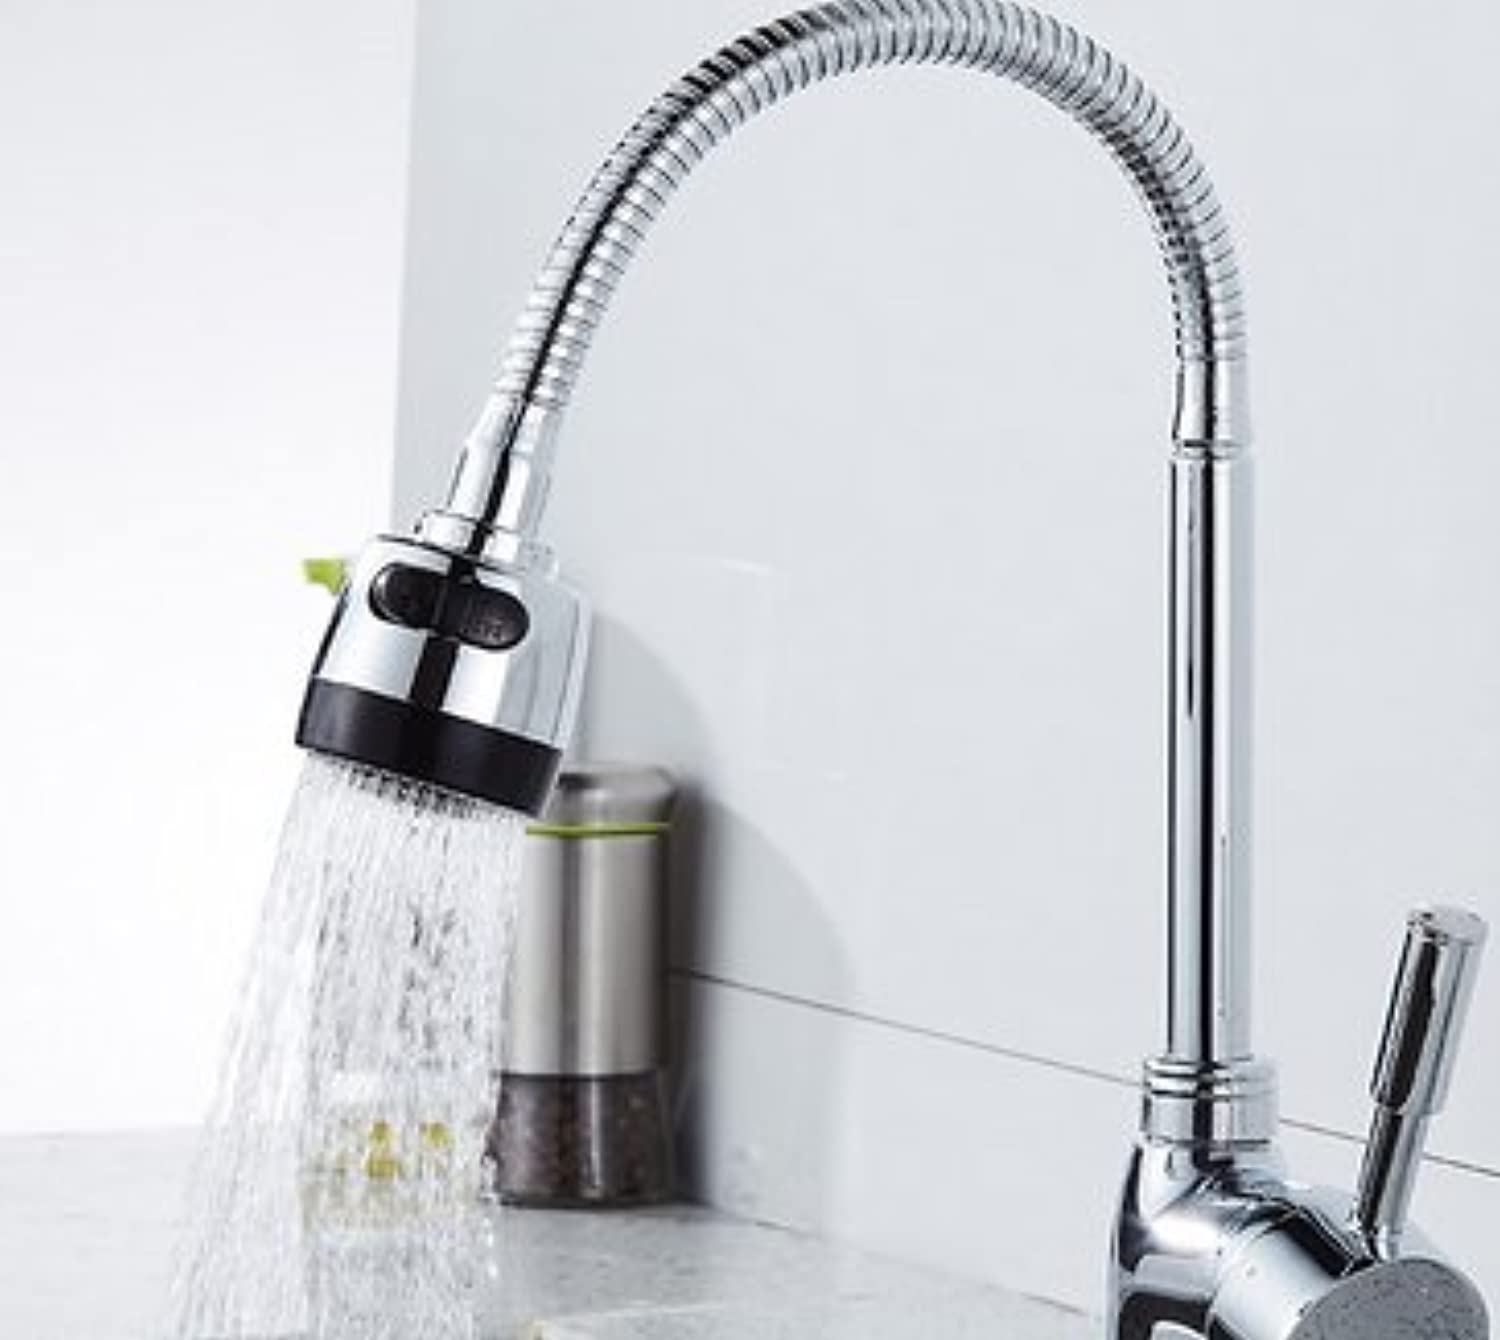 Retro Deluxe Faucetinging 360 Degree Steering Kitchen Faucet Cold and Hot Kitchen Tap Single Hole Water Tap Kitchen Bathroom Faucet,Silver